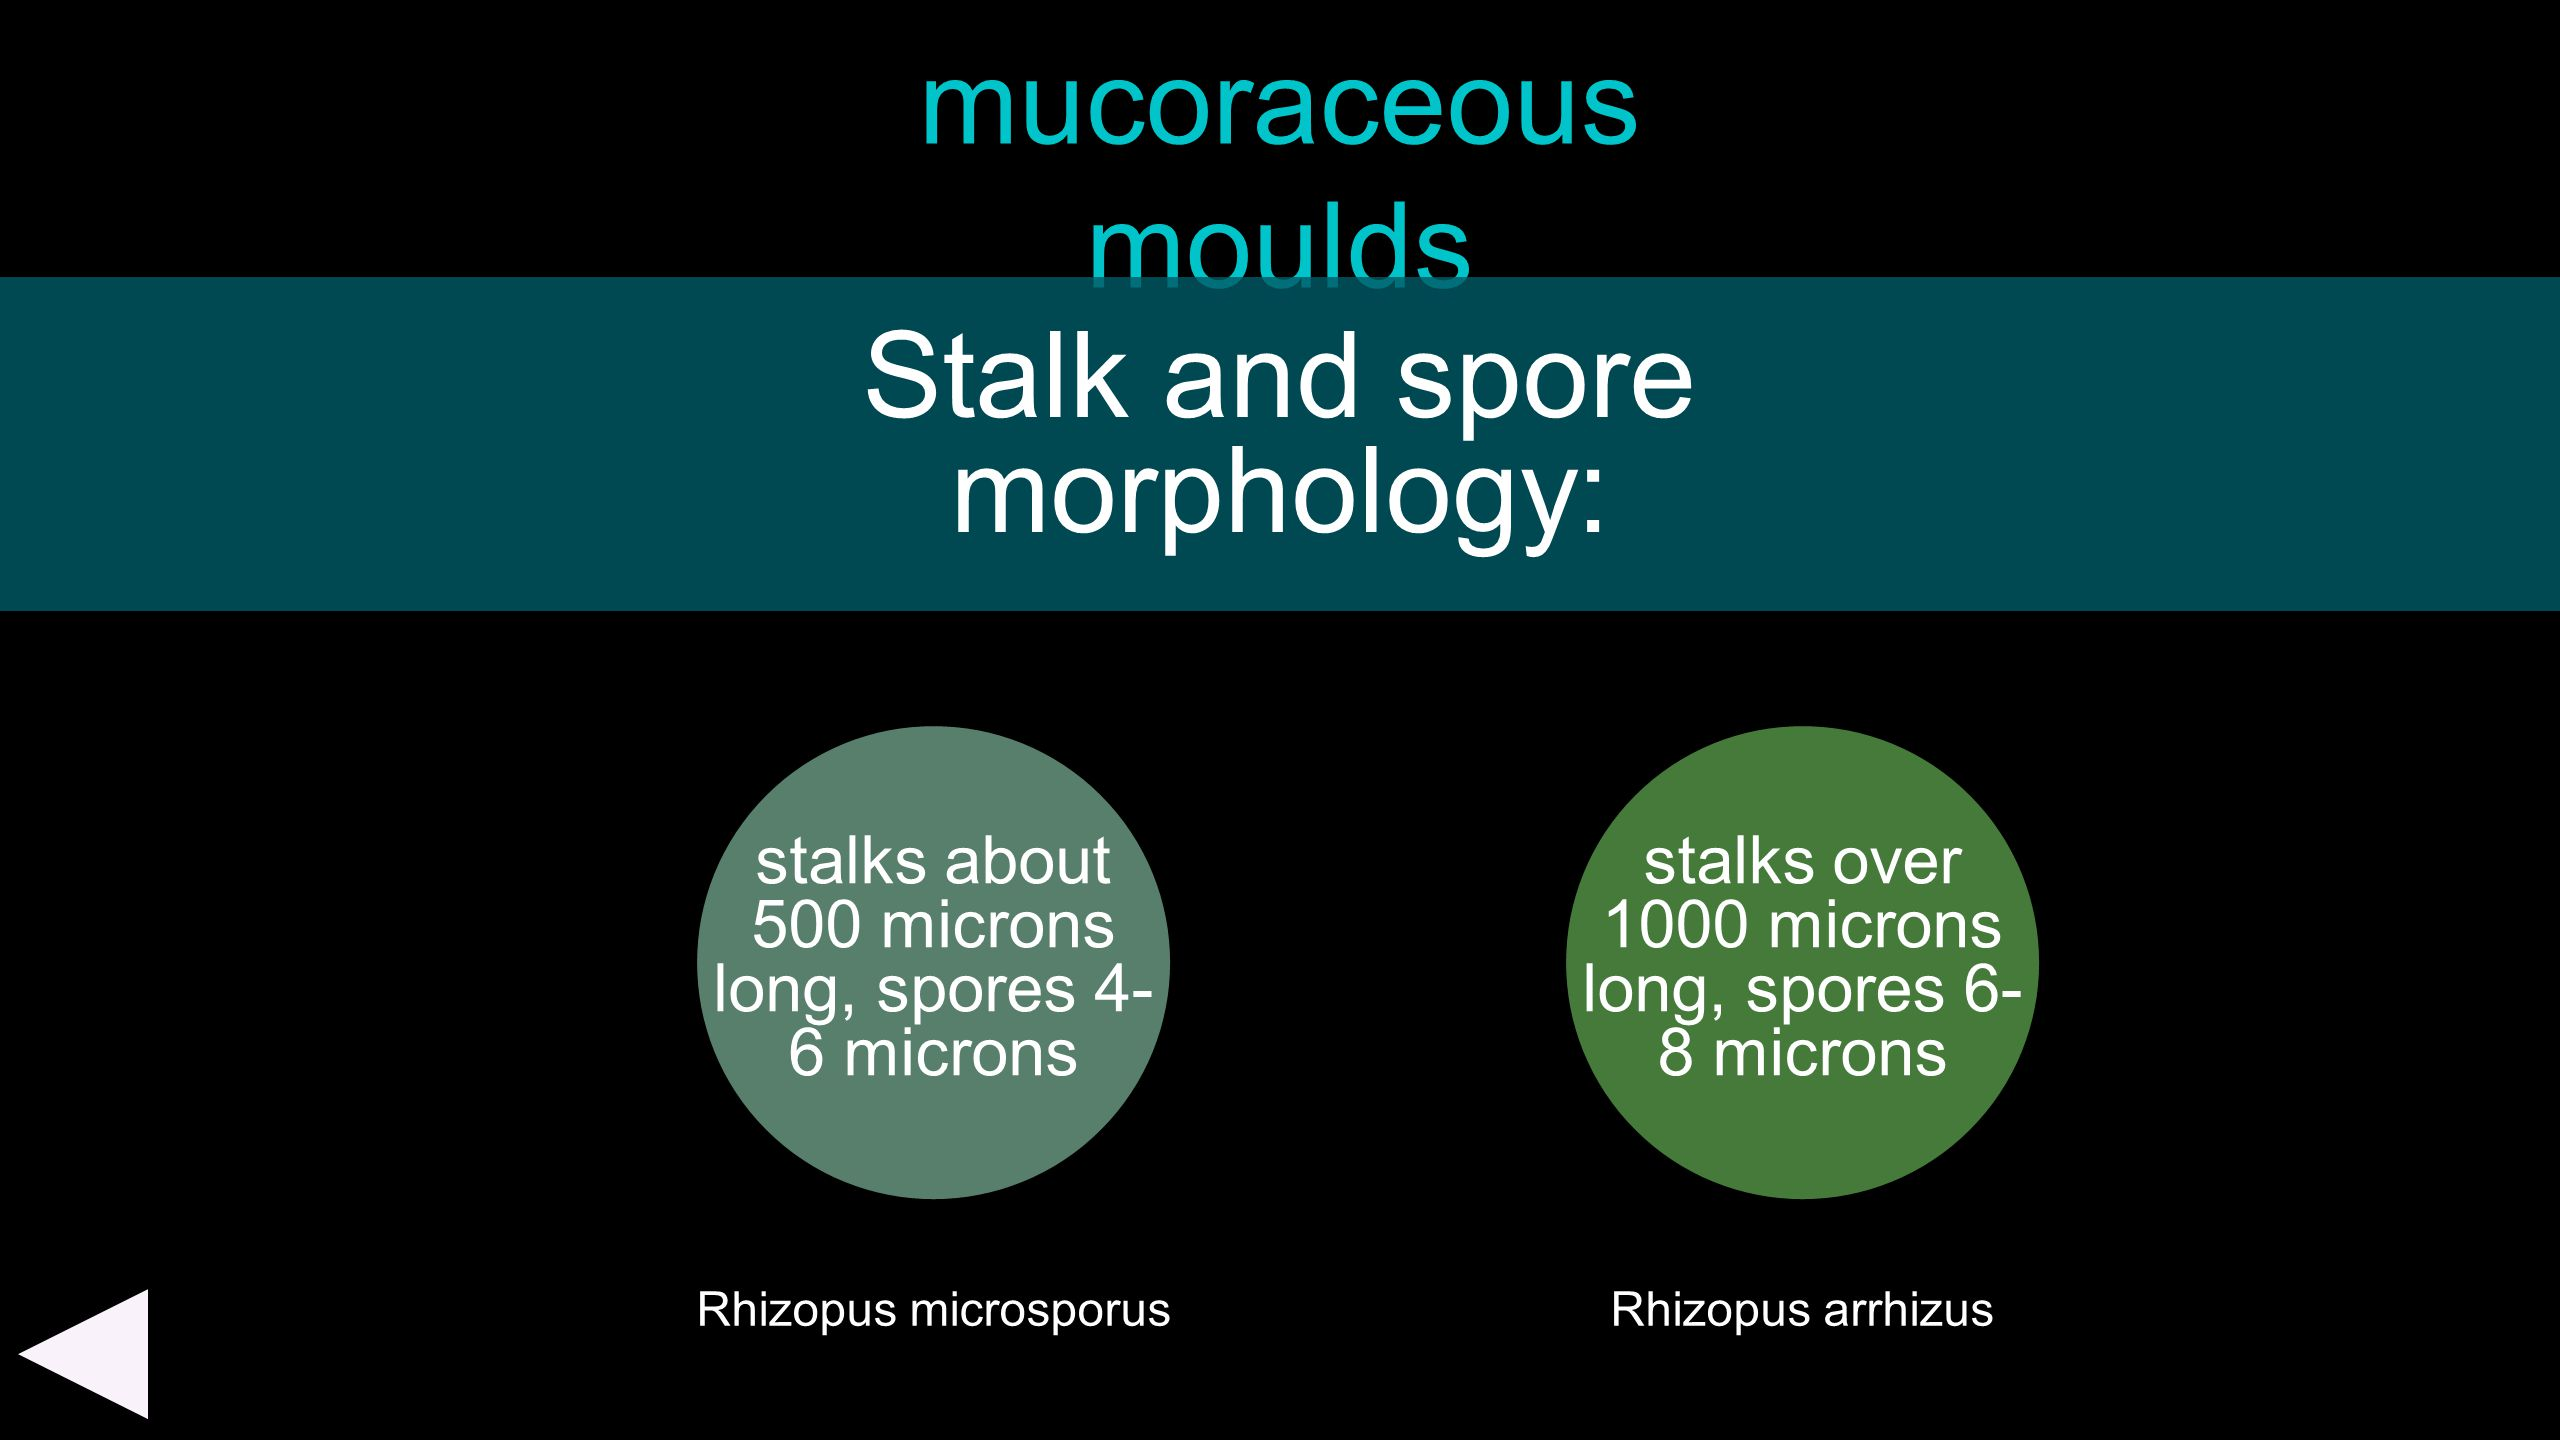 Stalk and spore morphology: